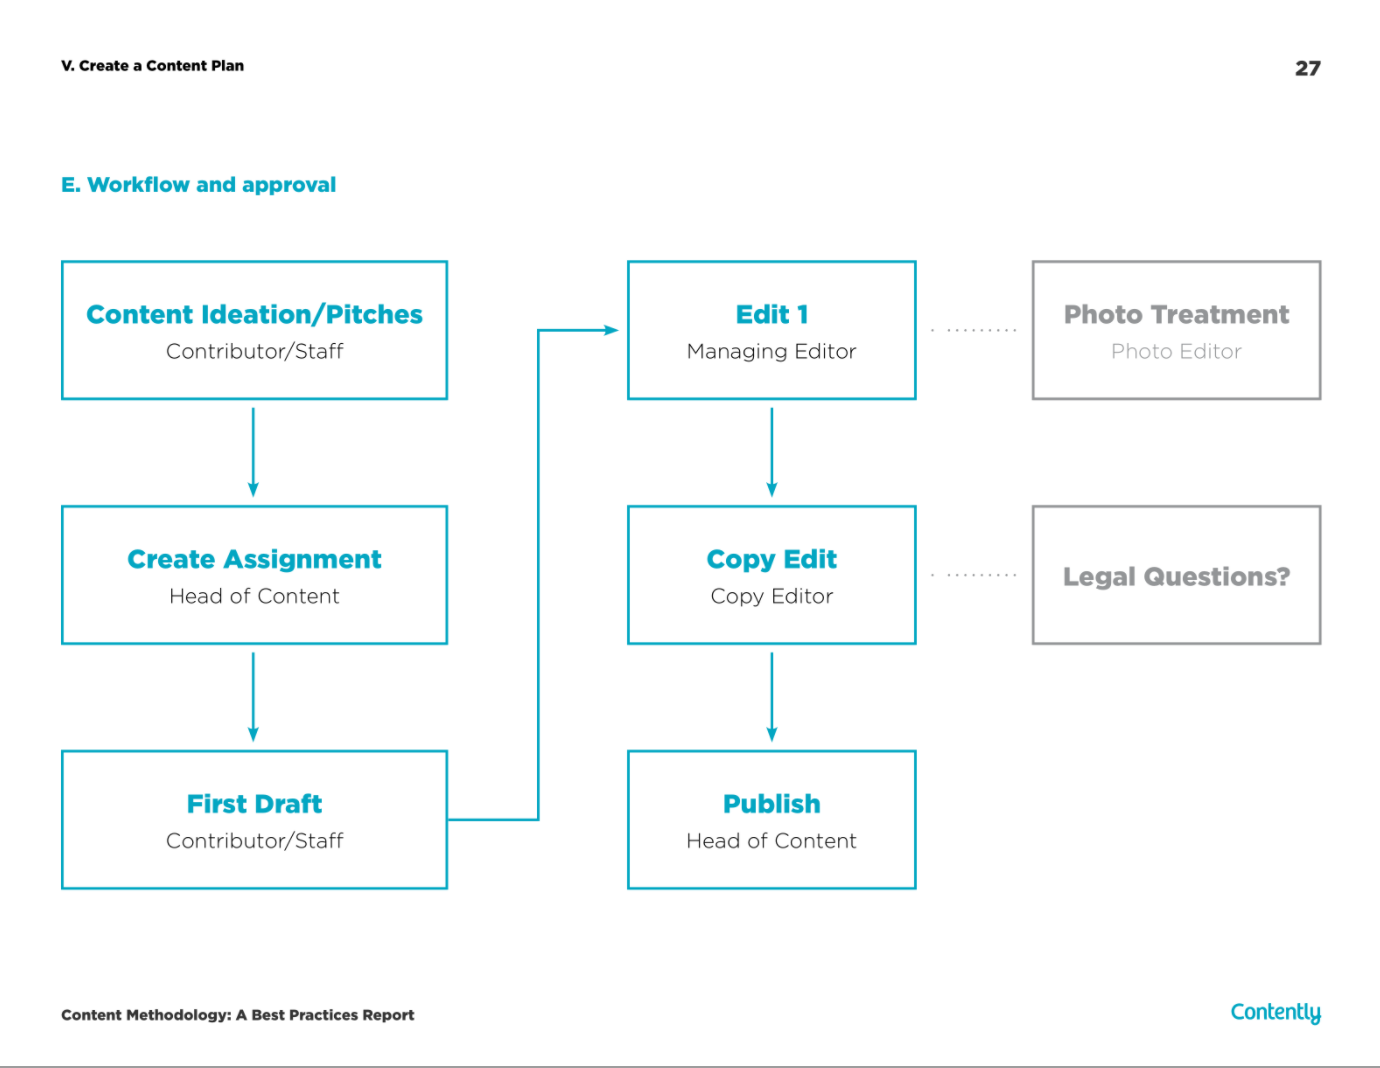 Content process flowchart from Contently